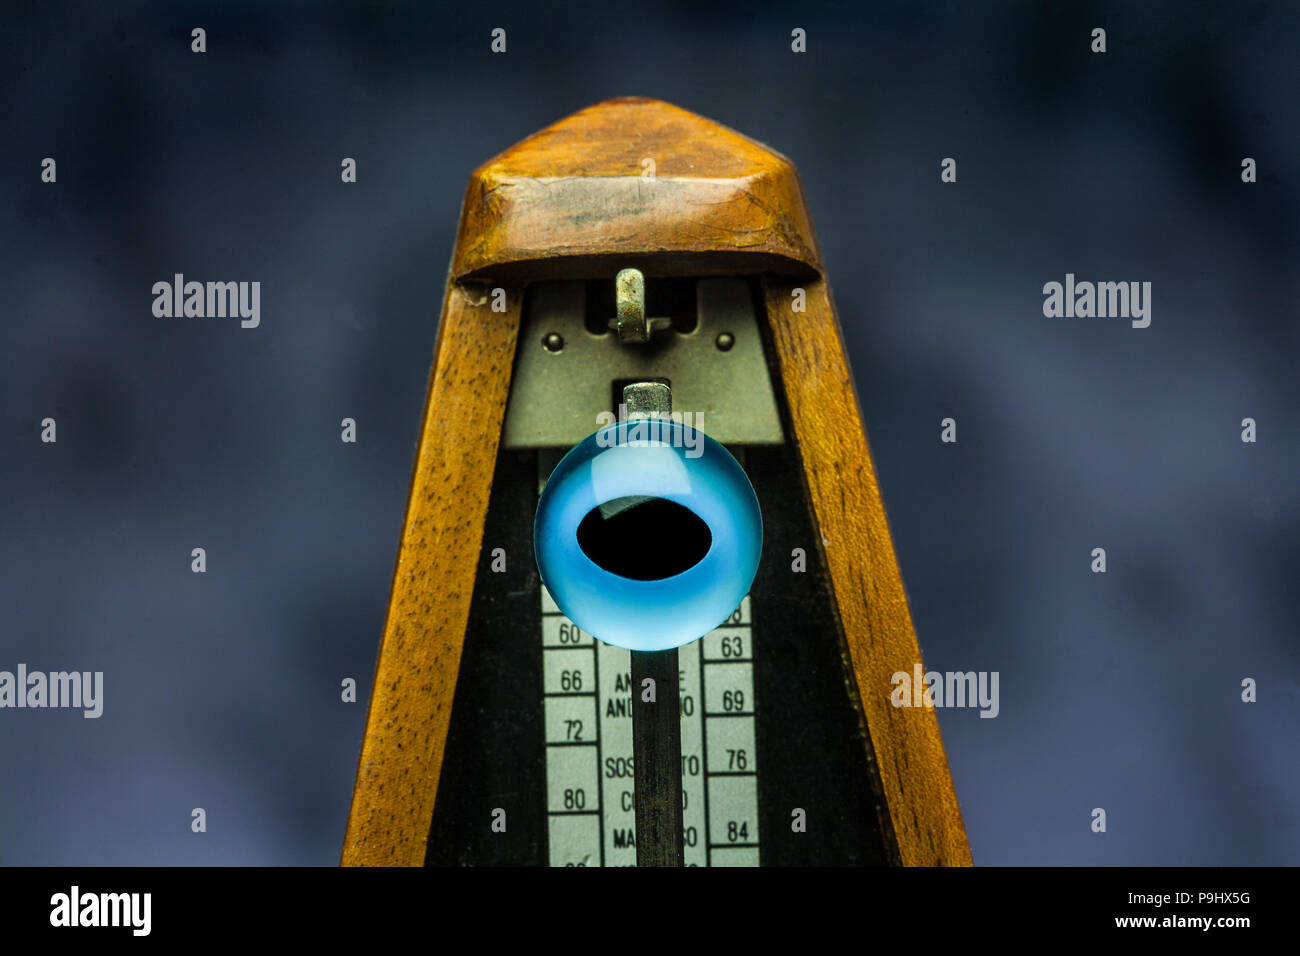 evil eye contained within the  triangle of a metronome. - Stock Image